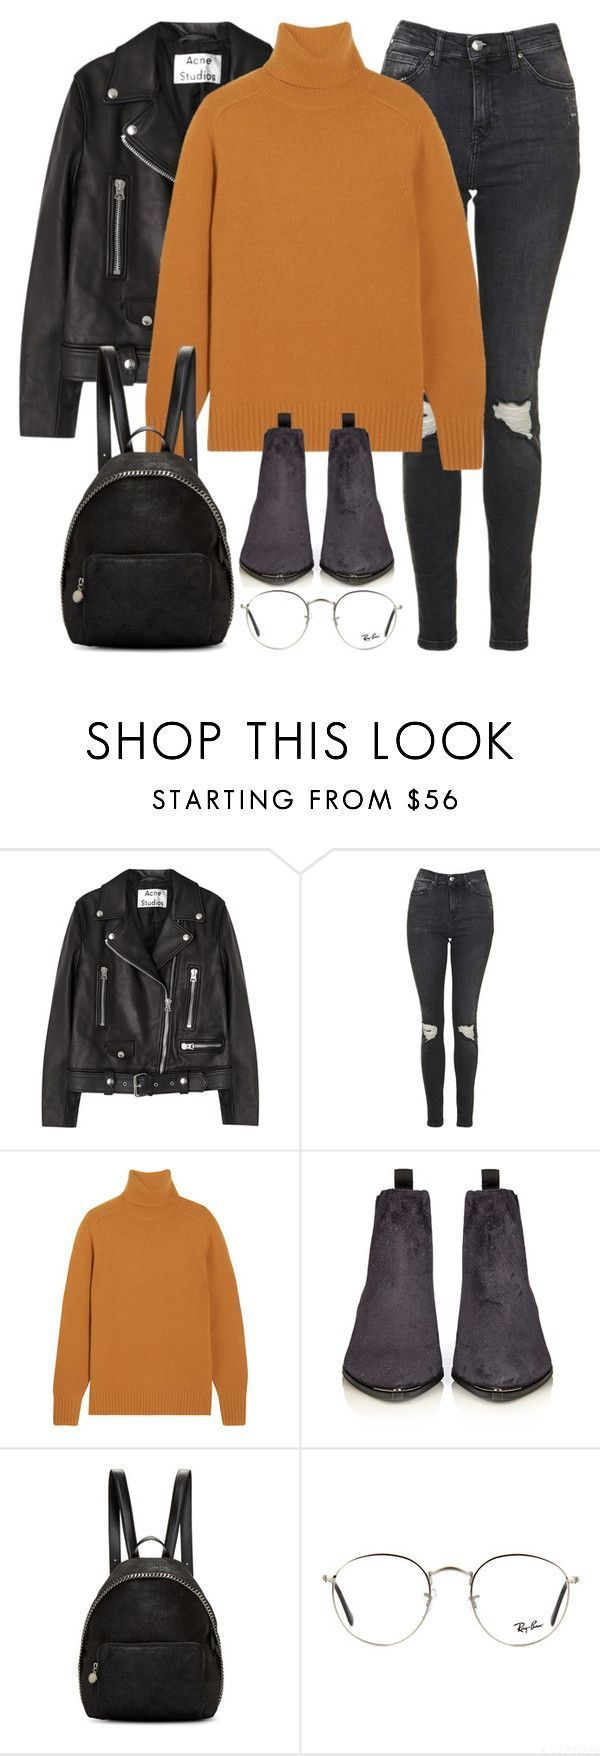 Winter Outfits | Winter Fashion | Winter Coats | Winter Boots. Find the best unique street fashion trends, winter weather jackets, new boots, new card…